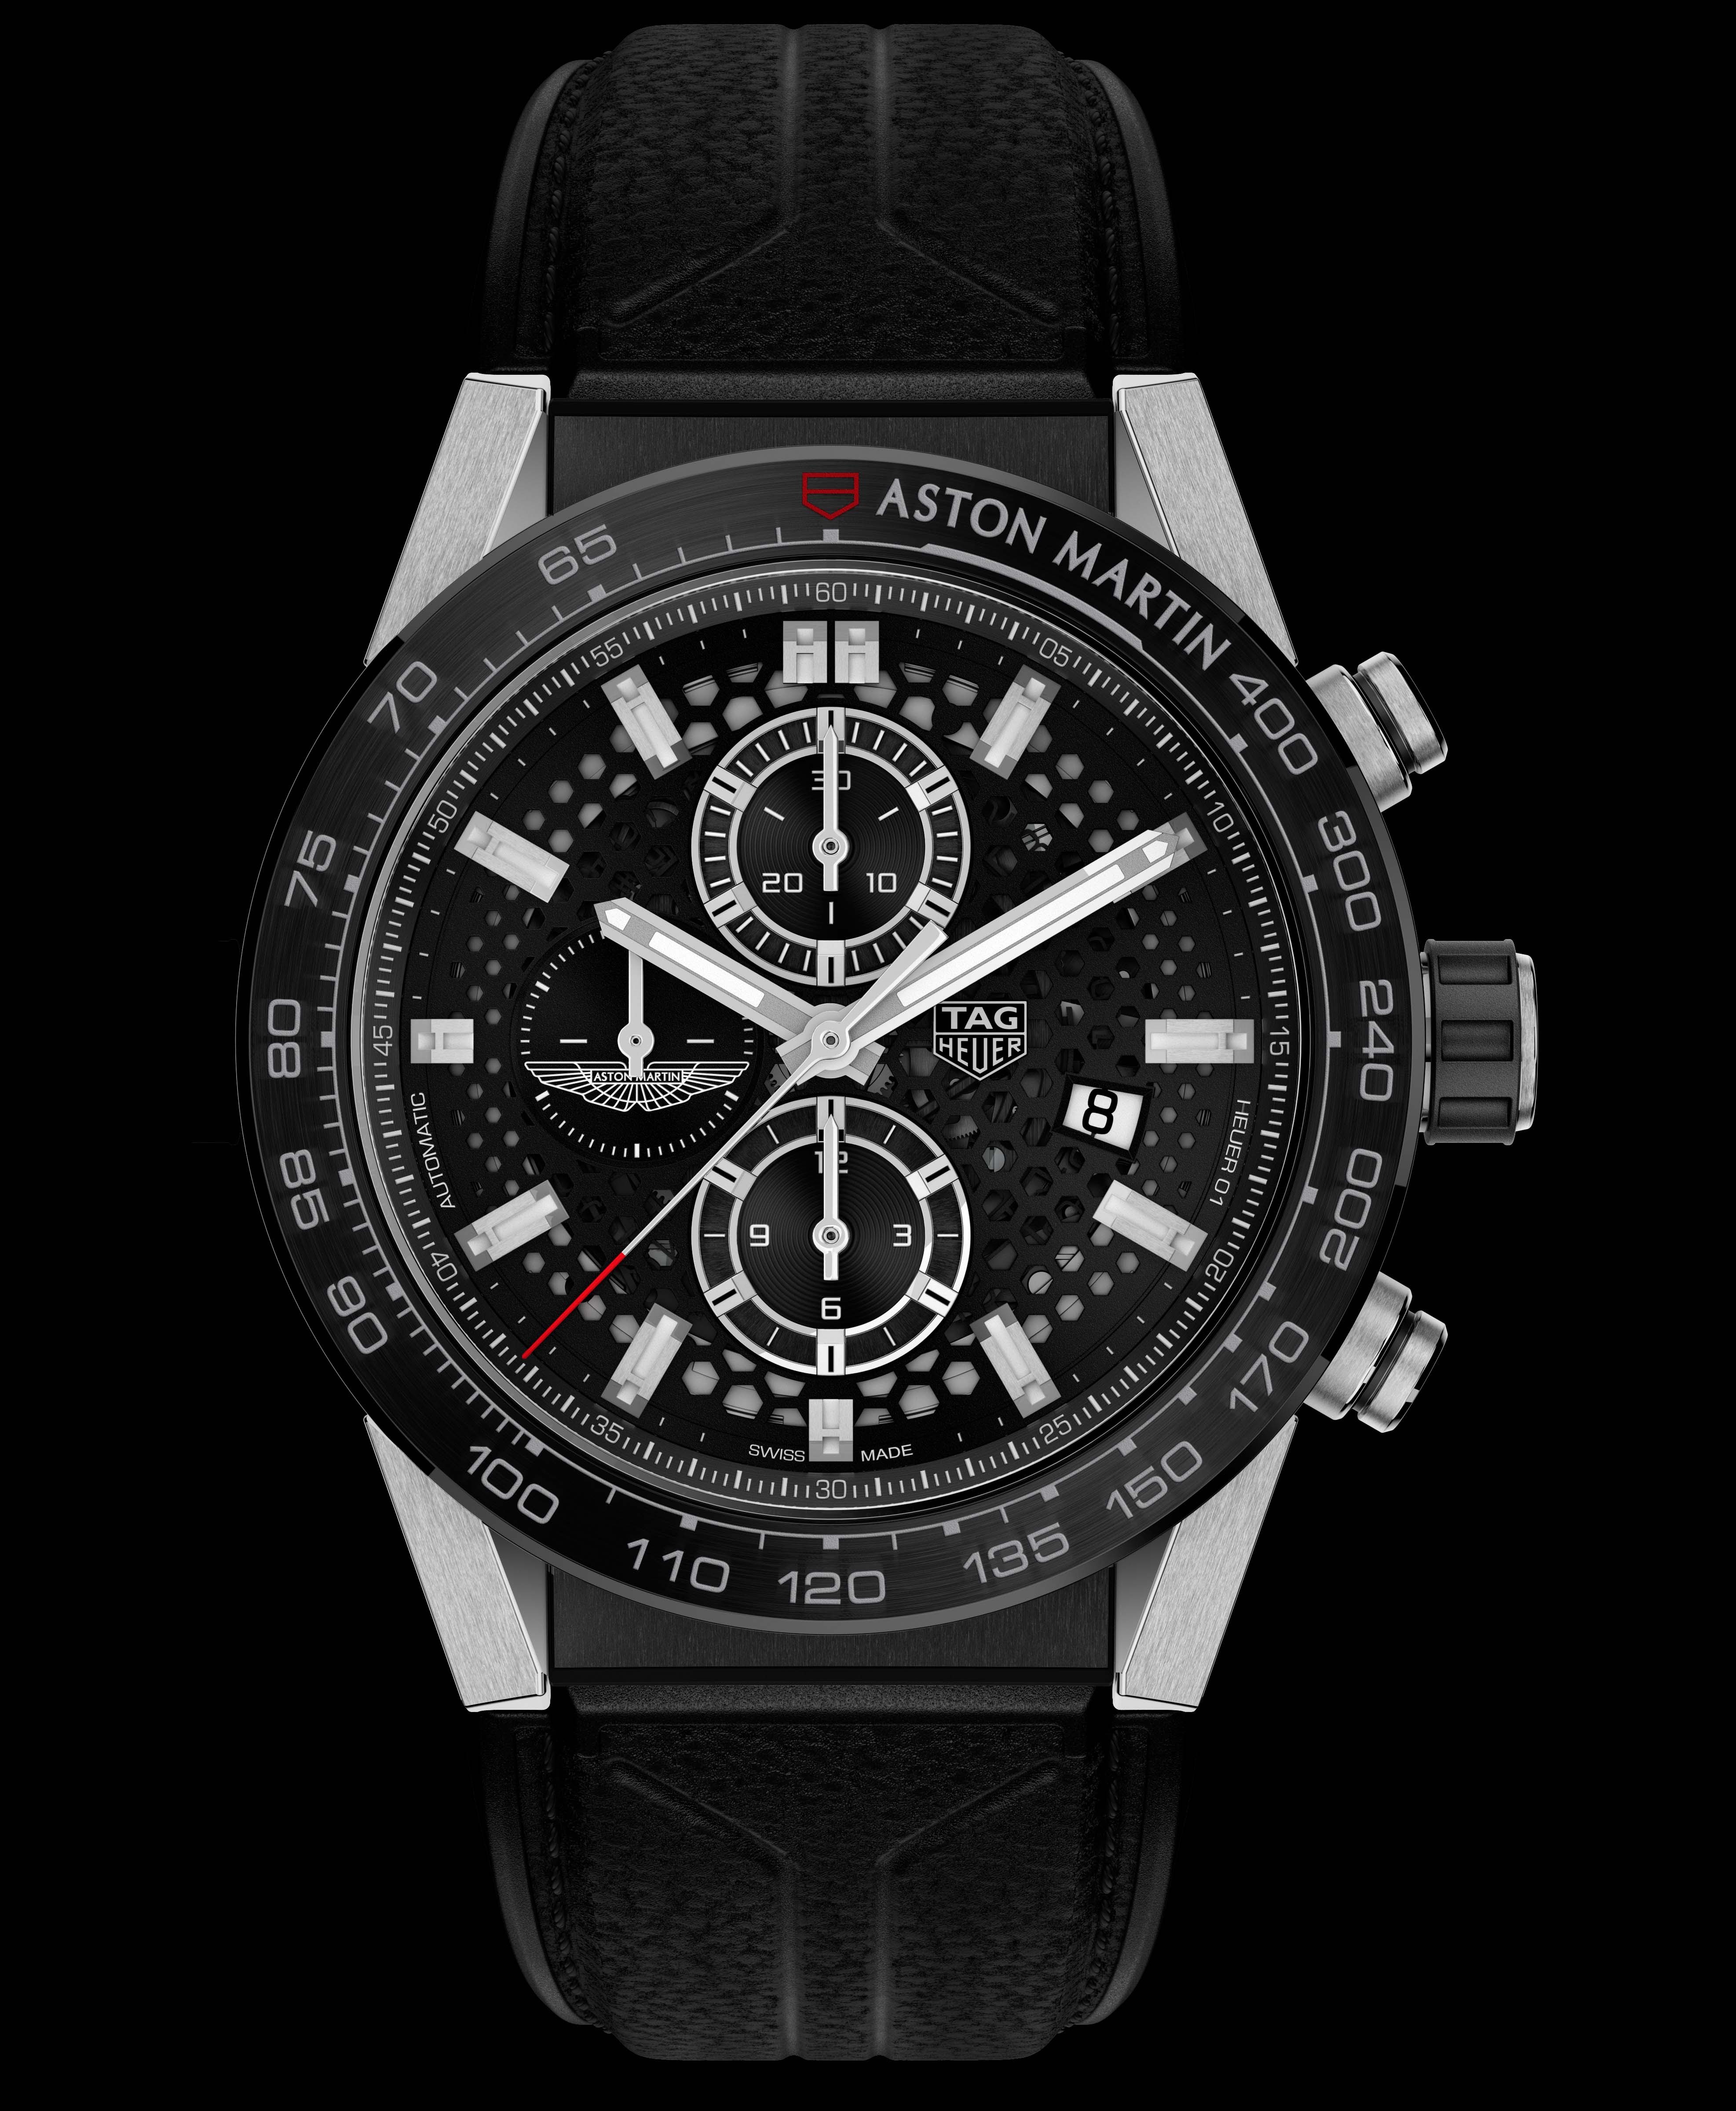 La Cote Des Montres Tag Heuer Presents The First Aston Martin Special Edition Chronographs Two Watches Honouring Aston Martin And Aston Martin Racing